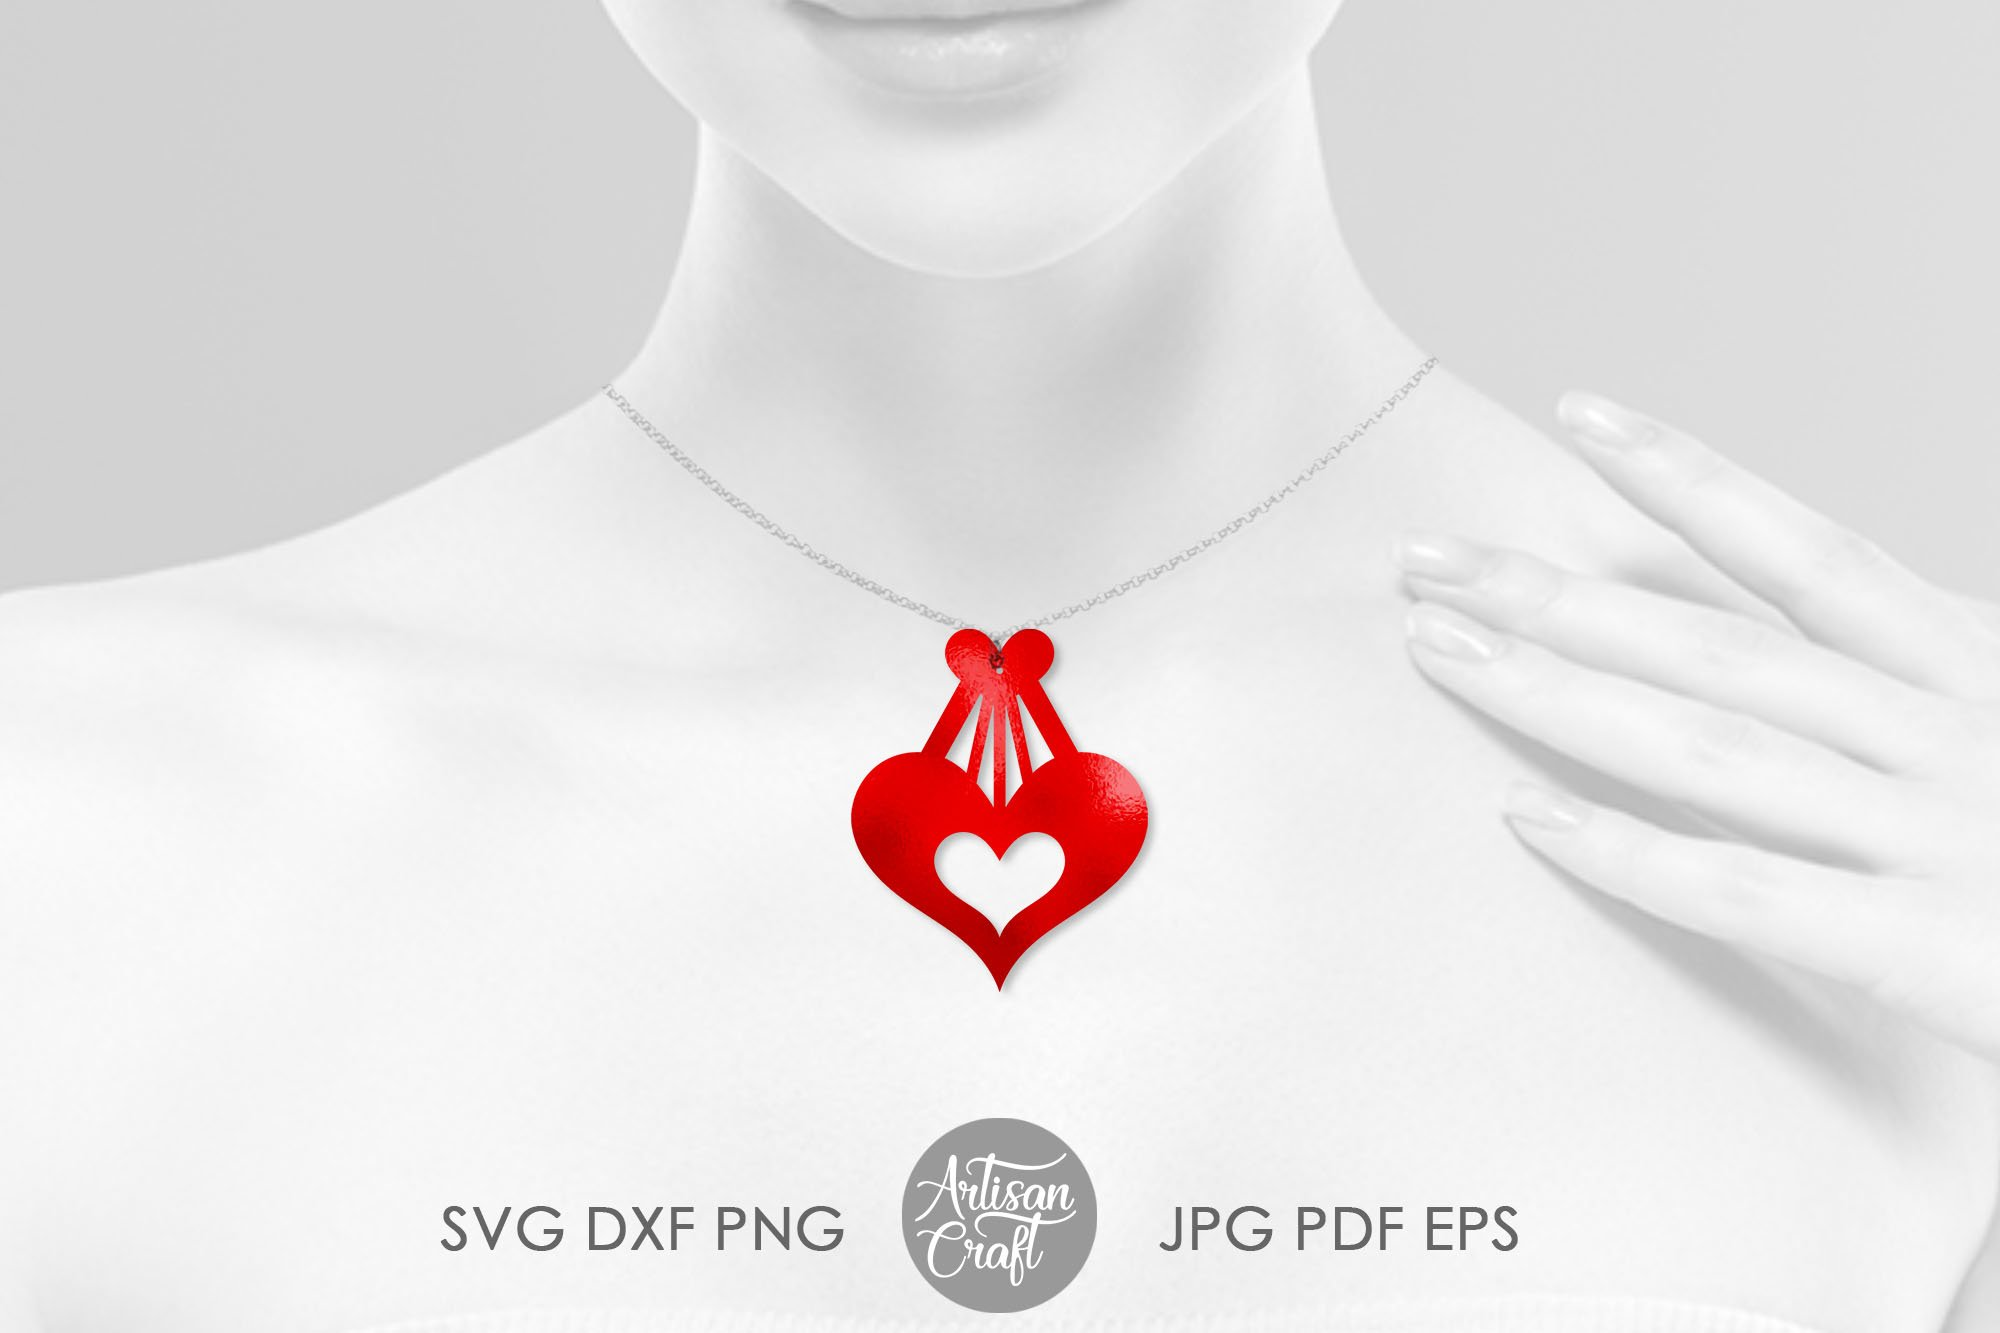 Heart earrings, SVG cutting files, faux leather earrings example image 2